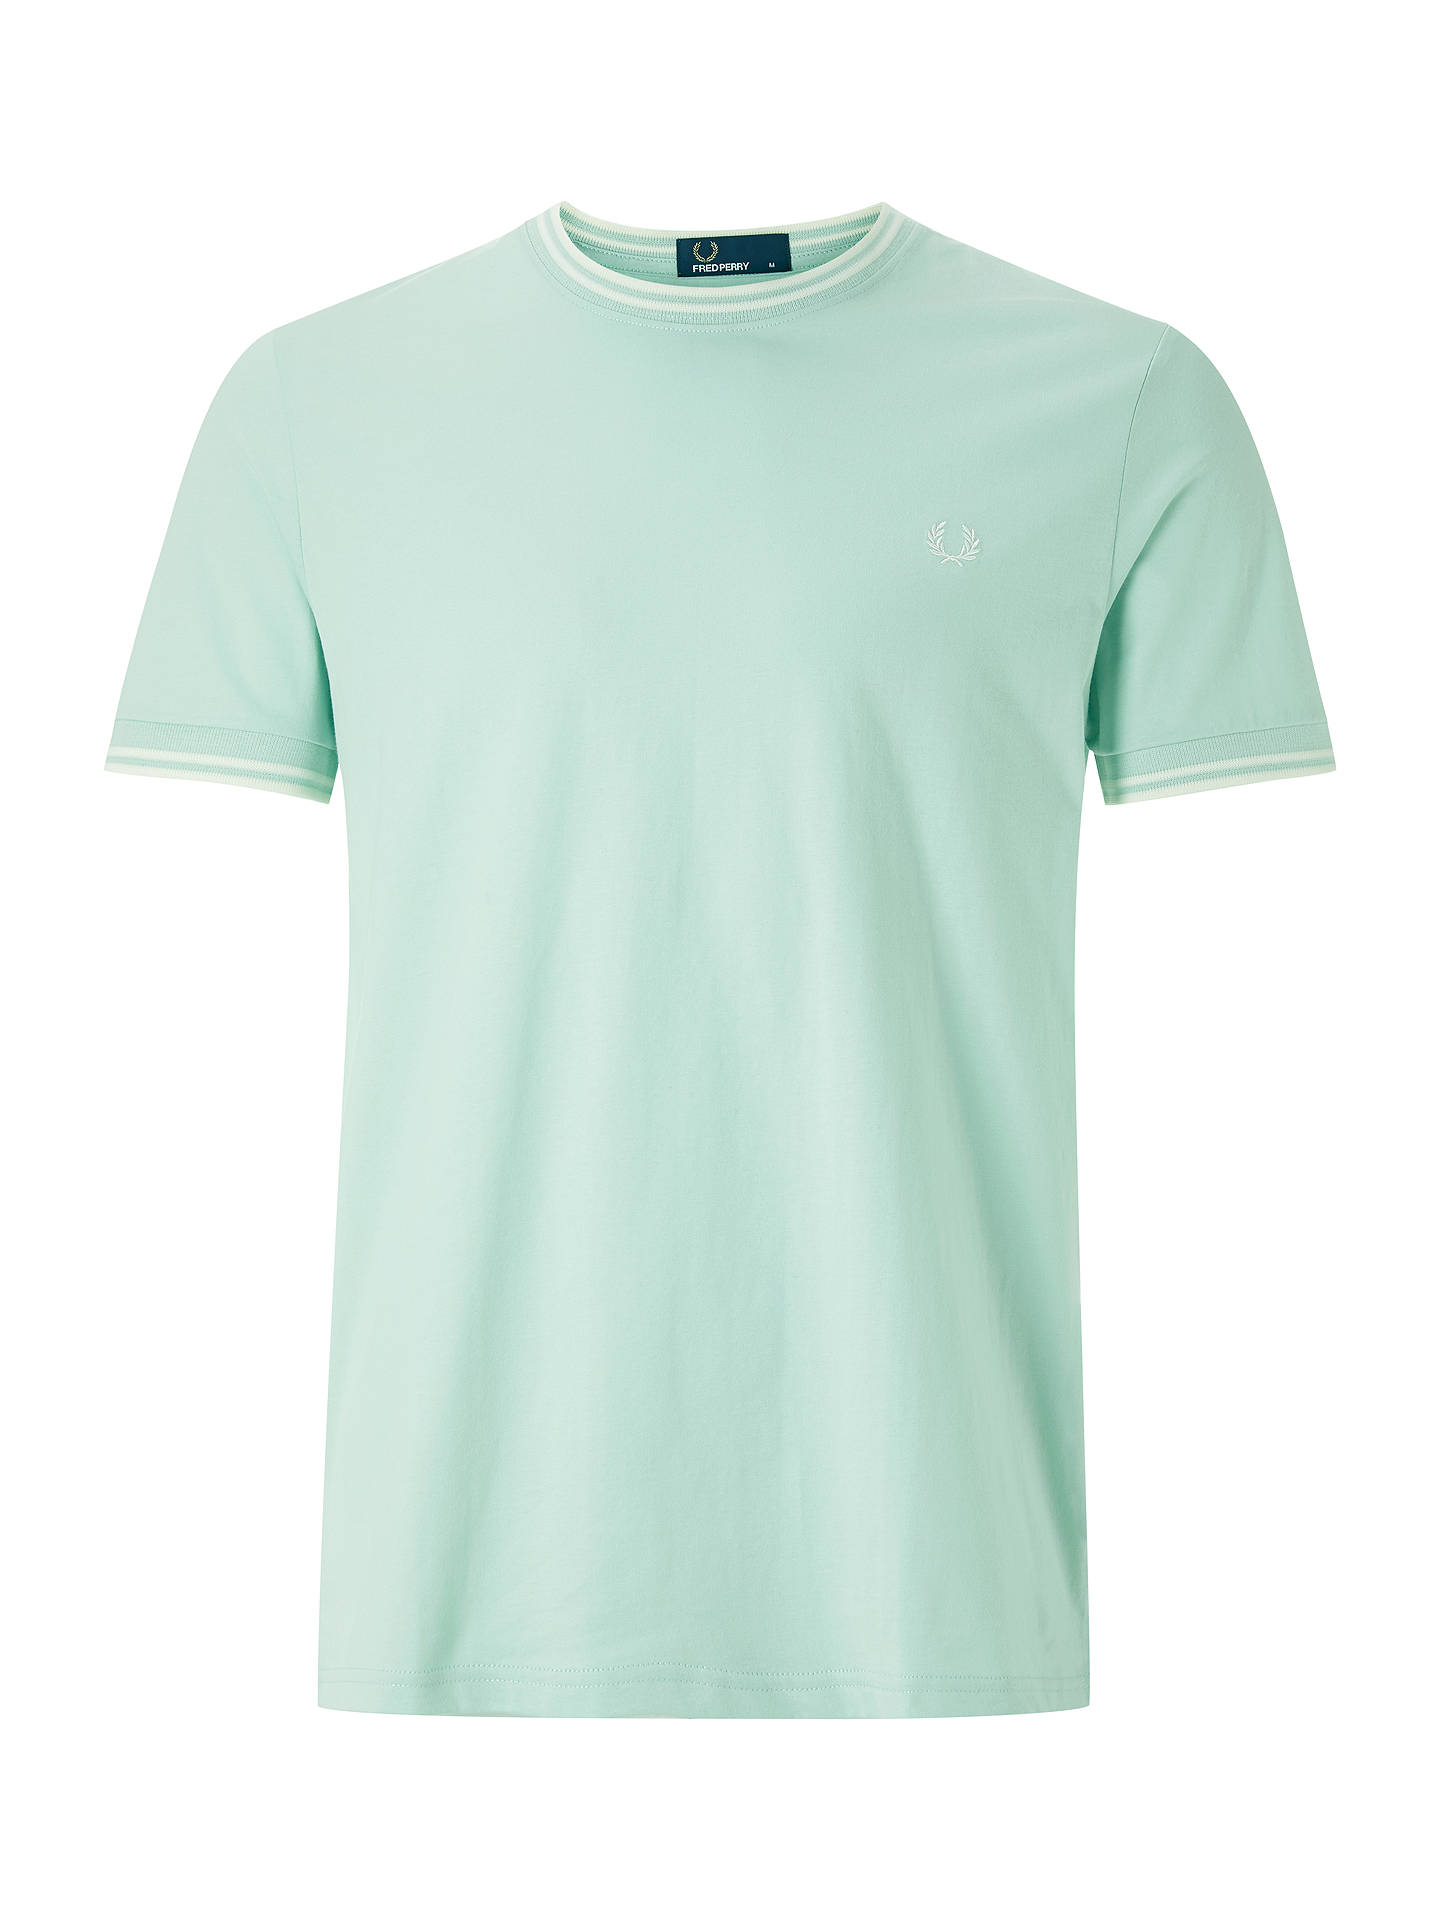 BuyFred Perry Twin Tipped T-Shirt, Mint, S Online at johnlewis.com